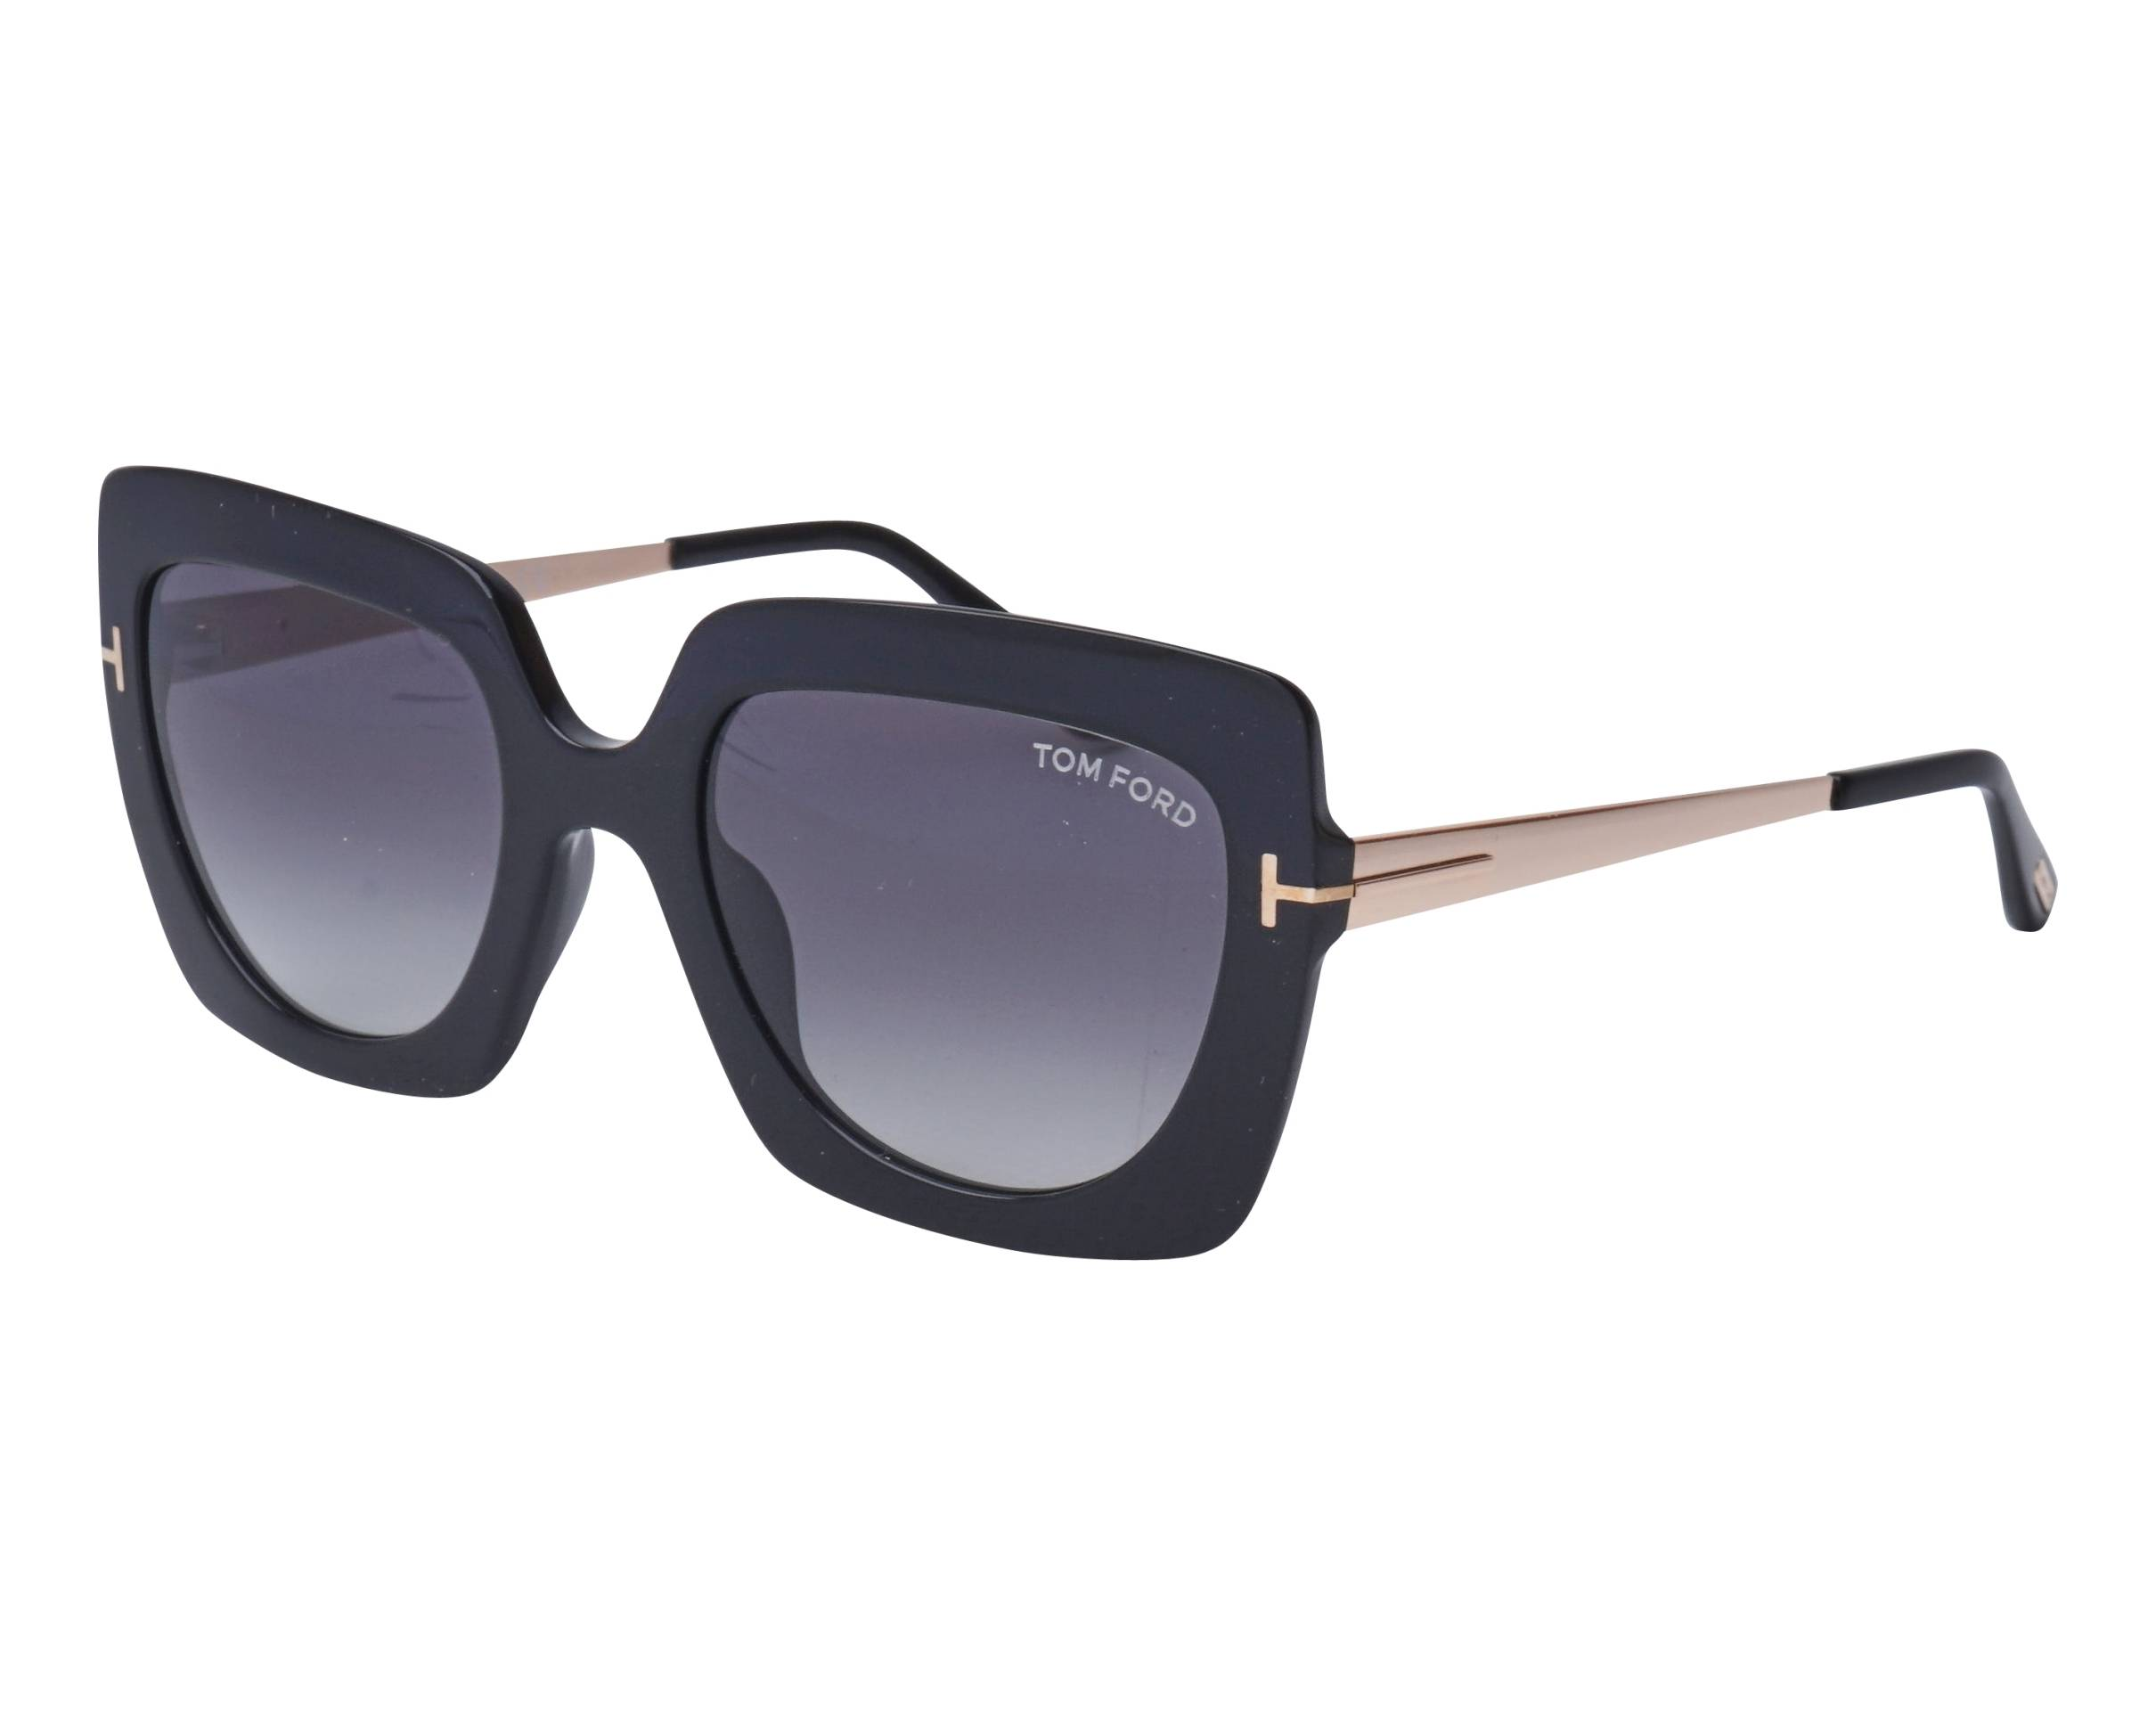 147a14374a Sunglasses Tom Ford TF-0610 01B 53-21 Black Gold profile view